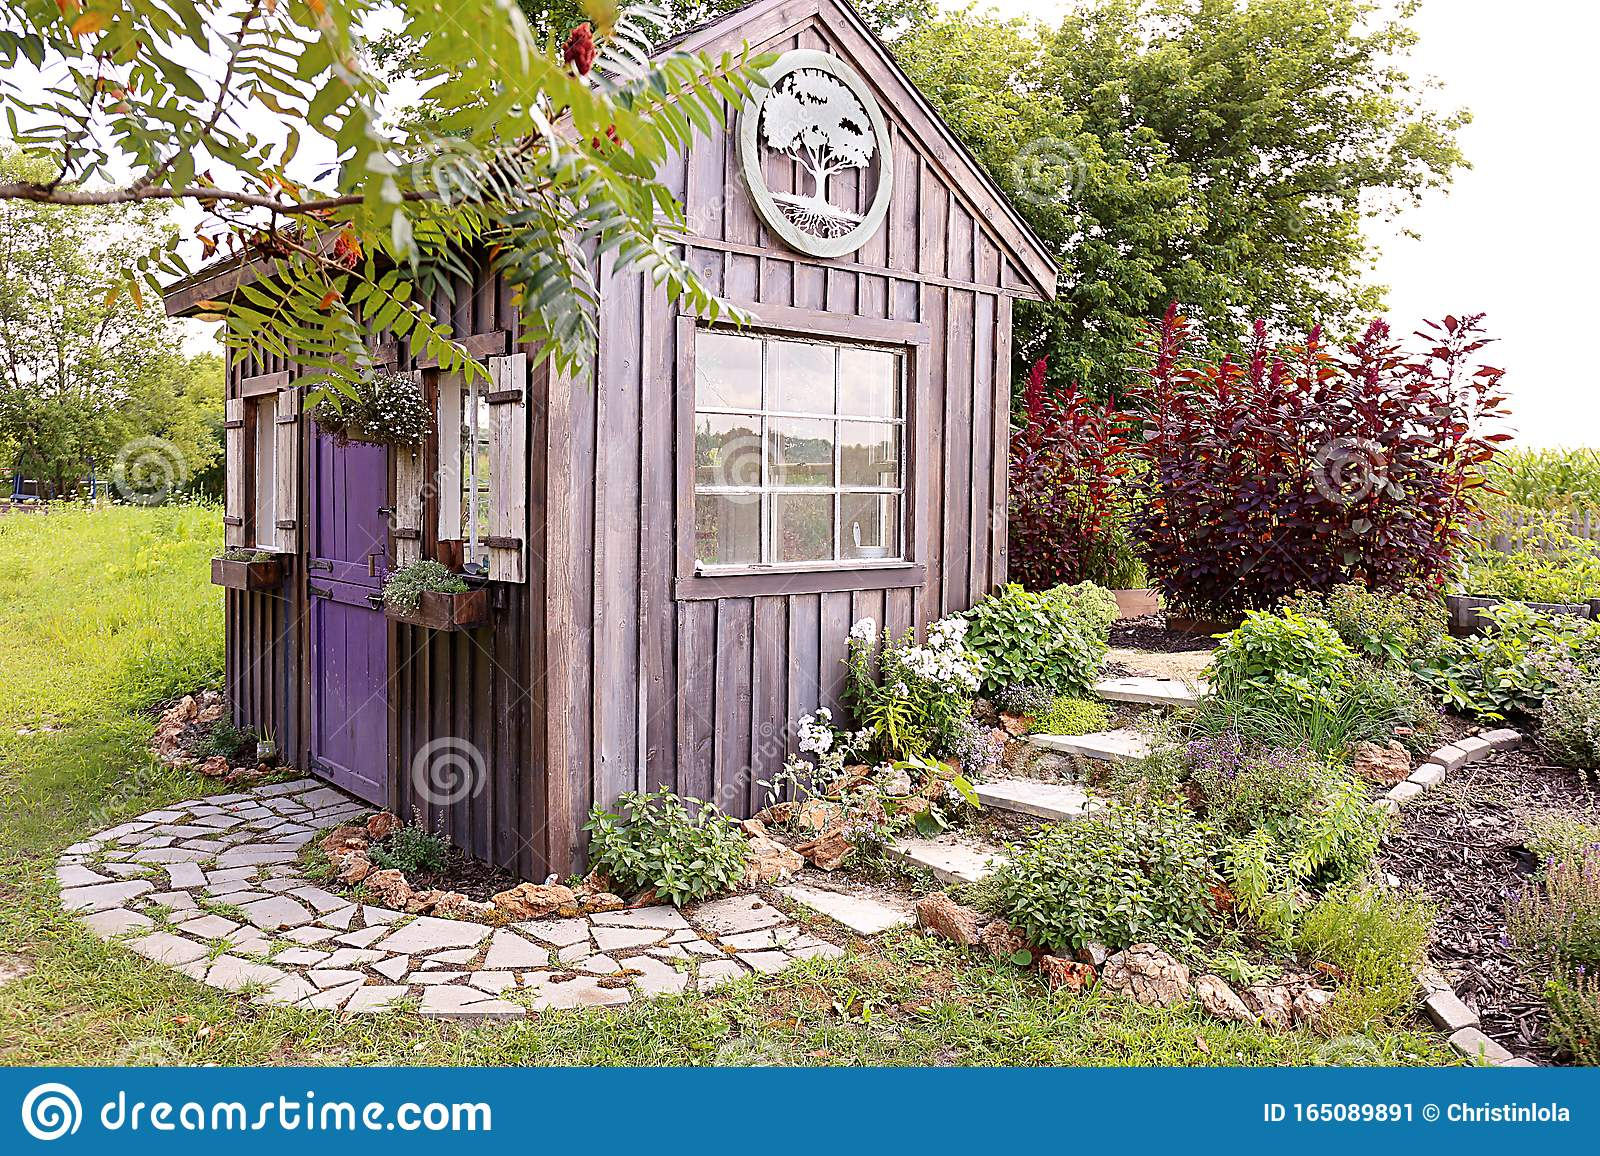 Custom Built Cottage Like Garden Shed With Cobblestone Sidewalk And Wood Board And Batten Siding Stock Image Image Of Herbs Life 165089891